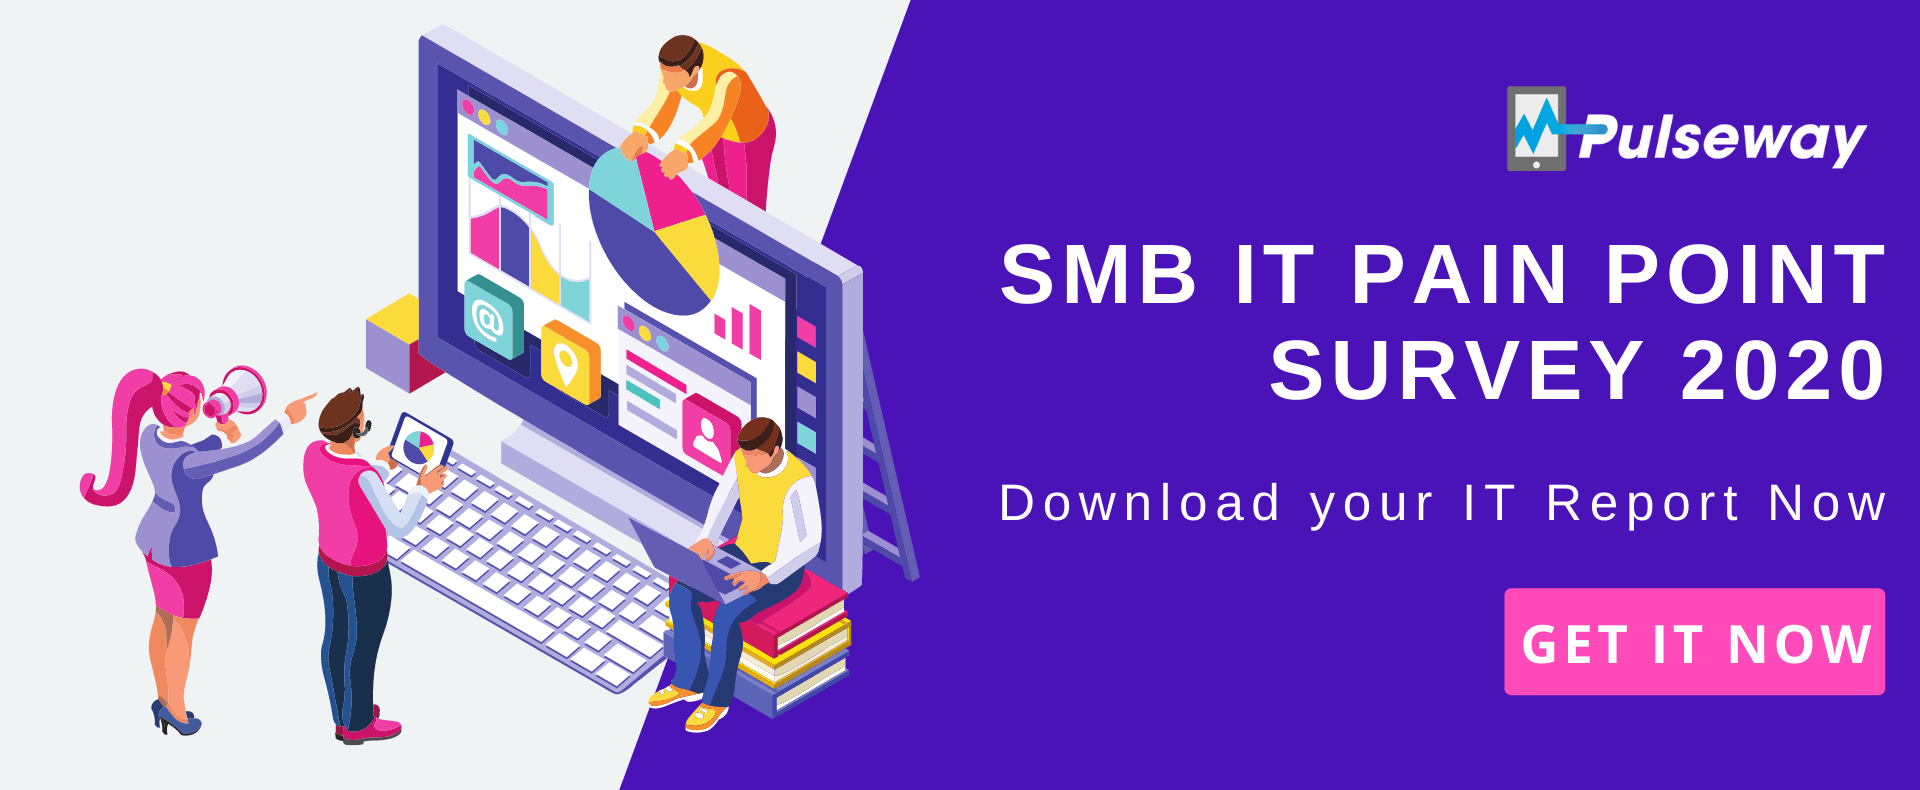 SMB IT Pain Point Survey 2020